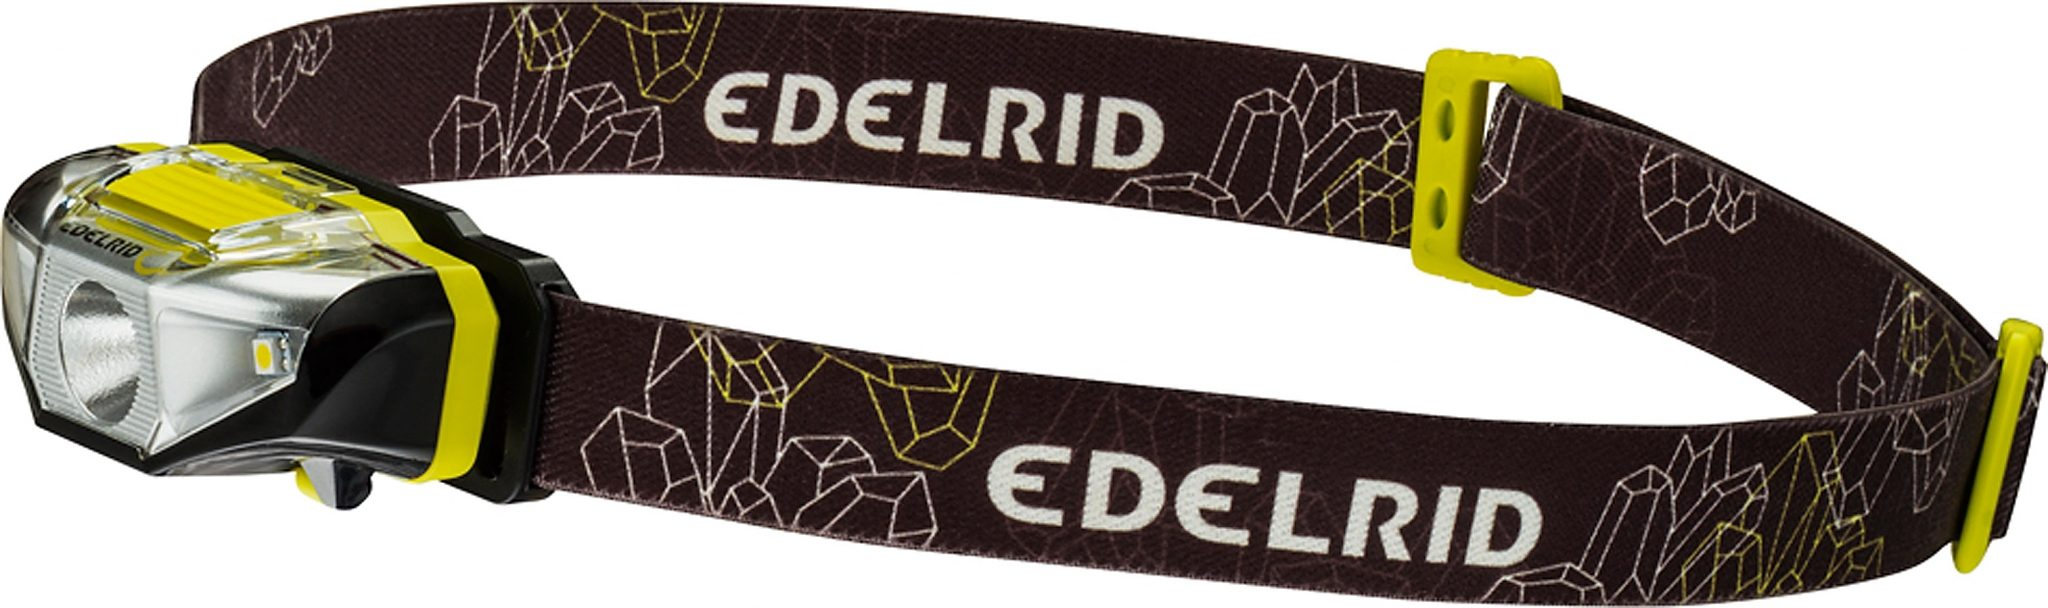 Edelrid Camping-Beleuchtung »Novalite Headlamp night-oasis«